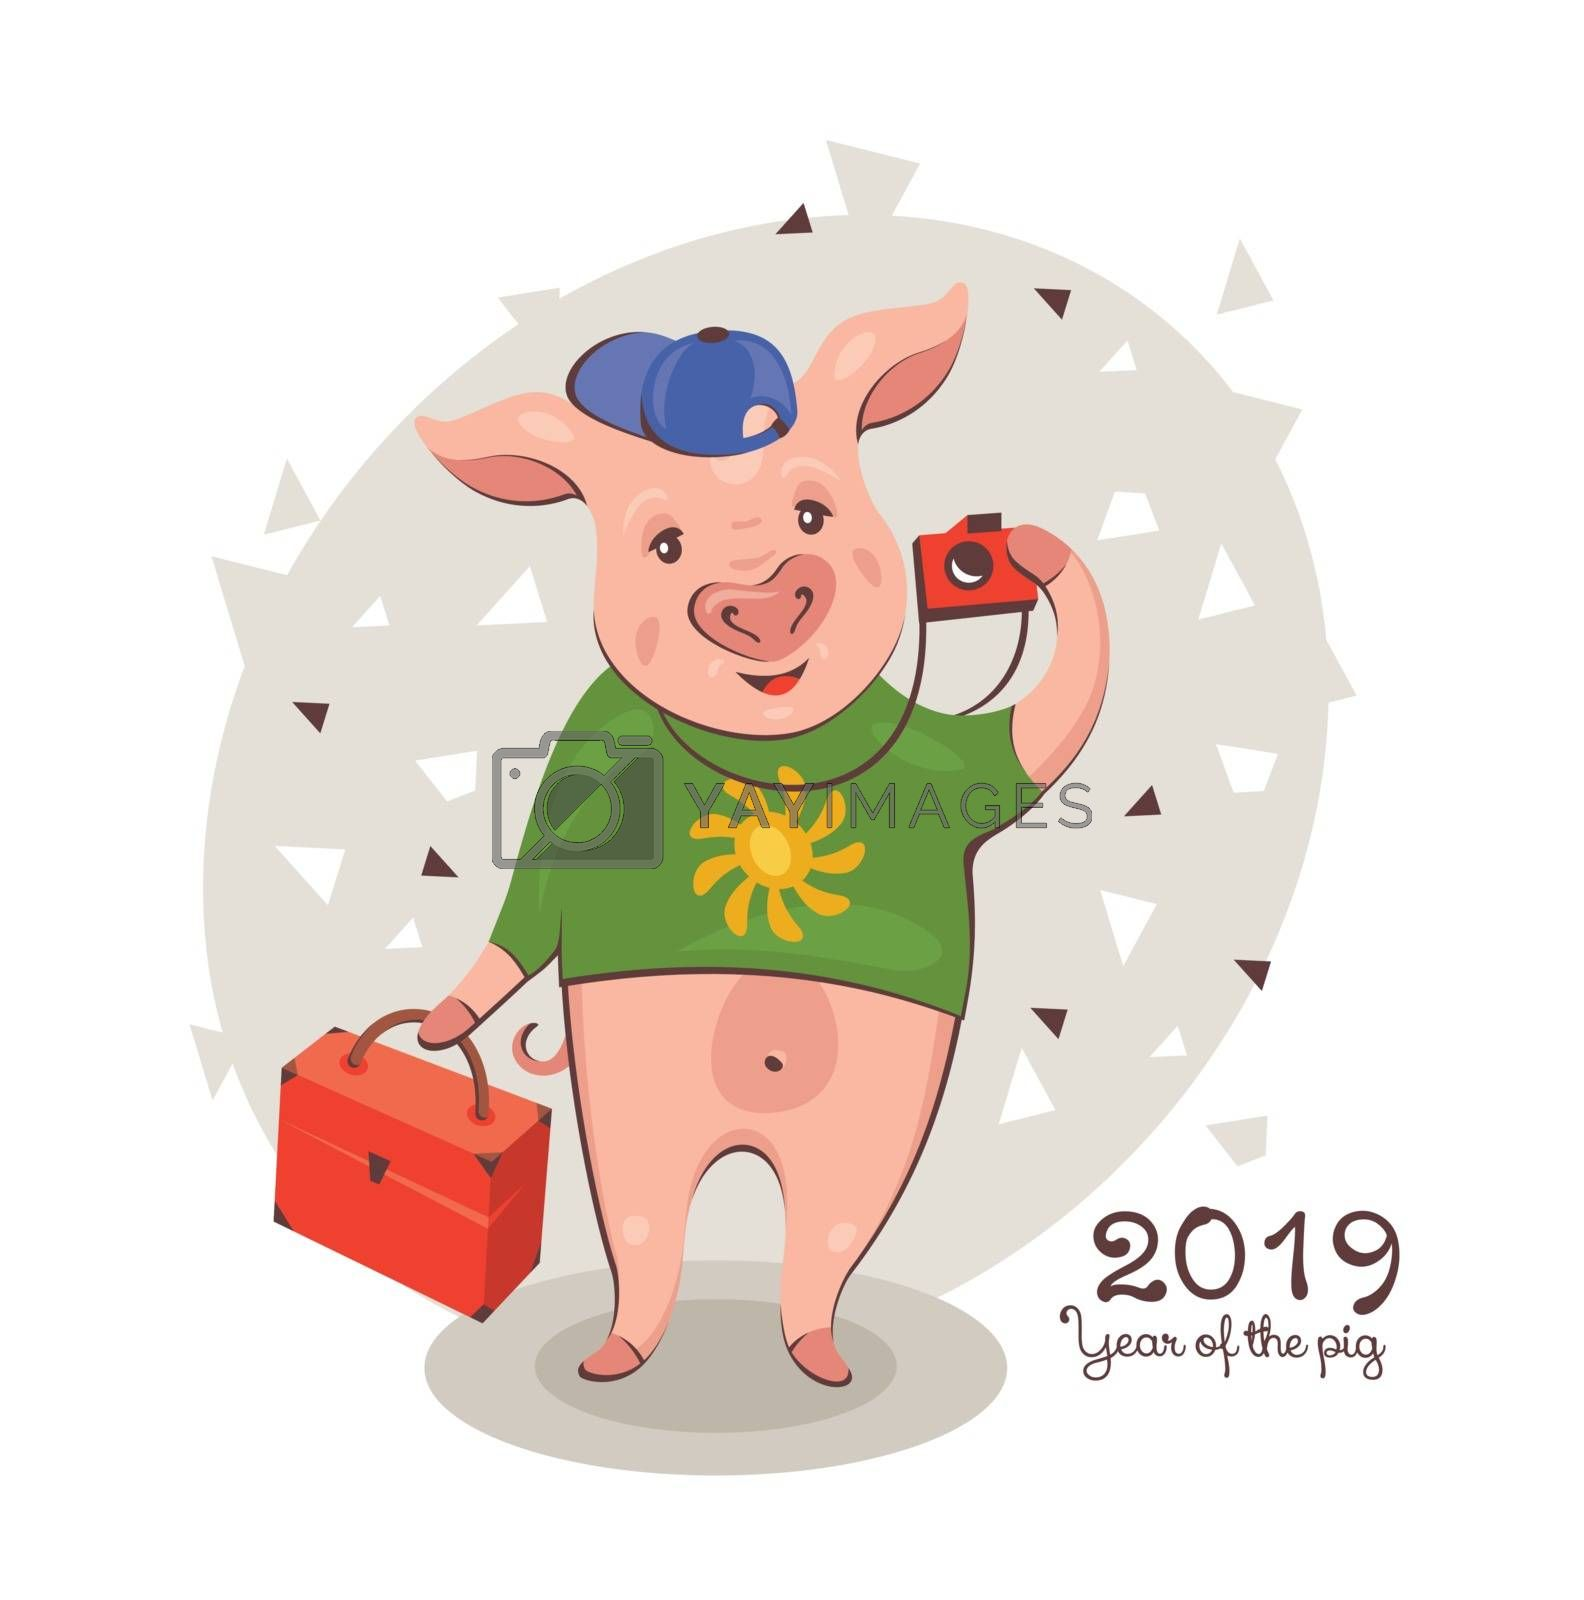 2019 New Year greeting card with a happy cute traveling pig. Vector illustration.